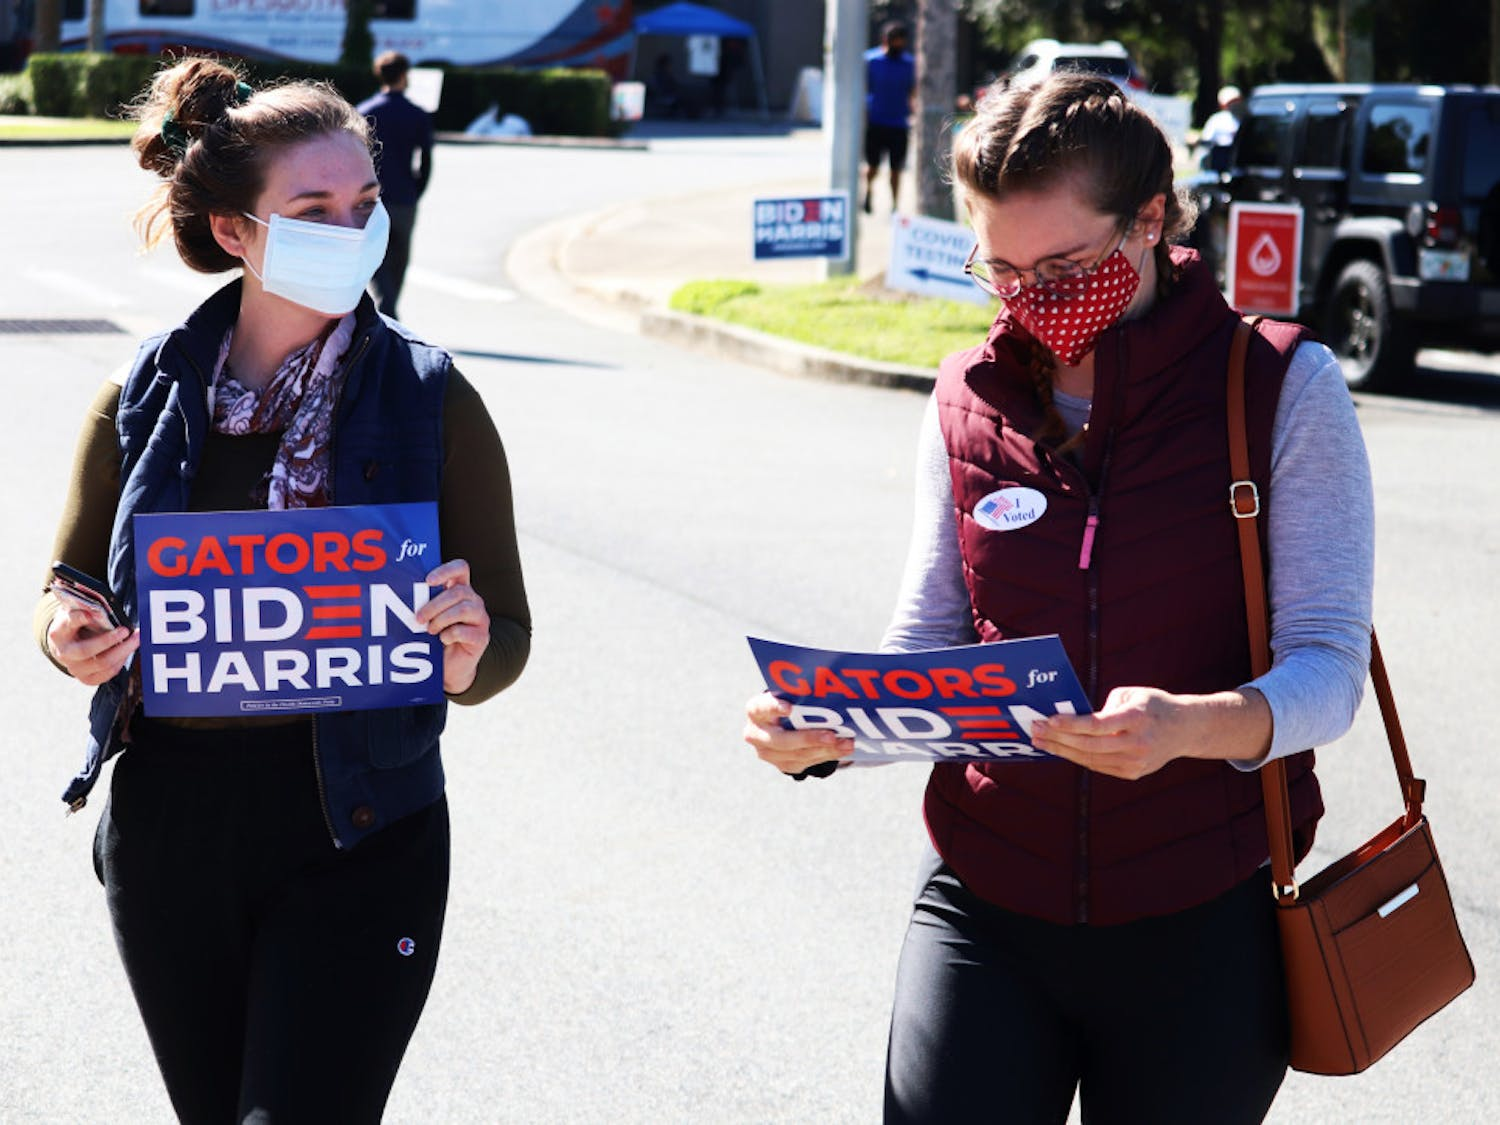 Two UF alumni leave precincts 44 and 54 after voting on Tuesday, Nov. 3, 2020.